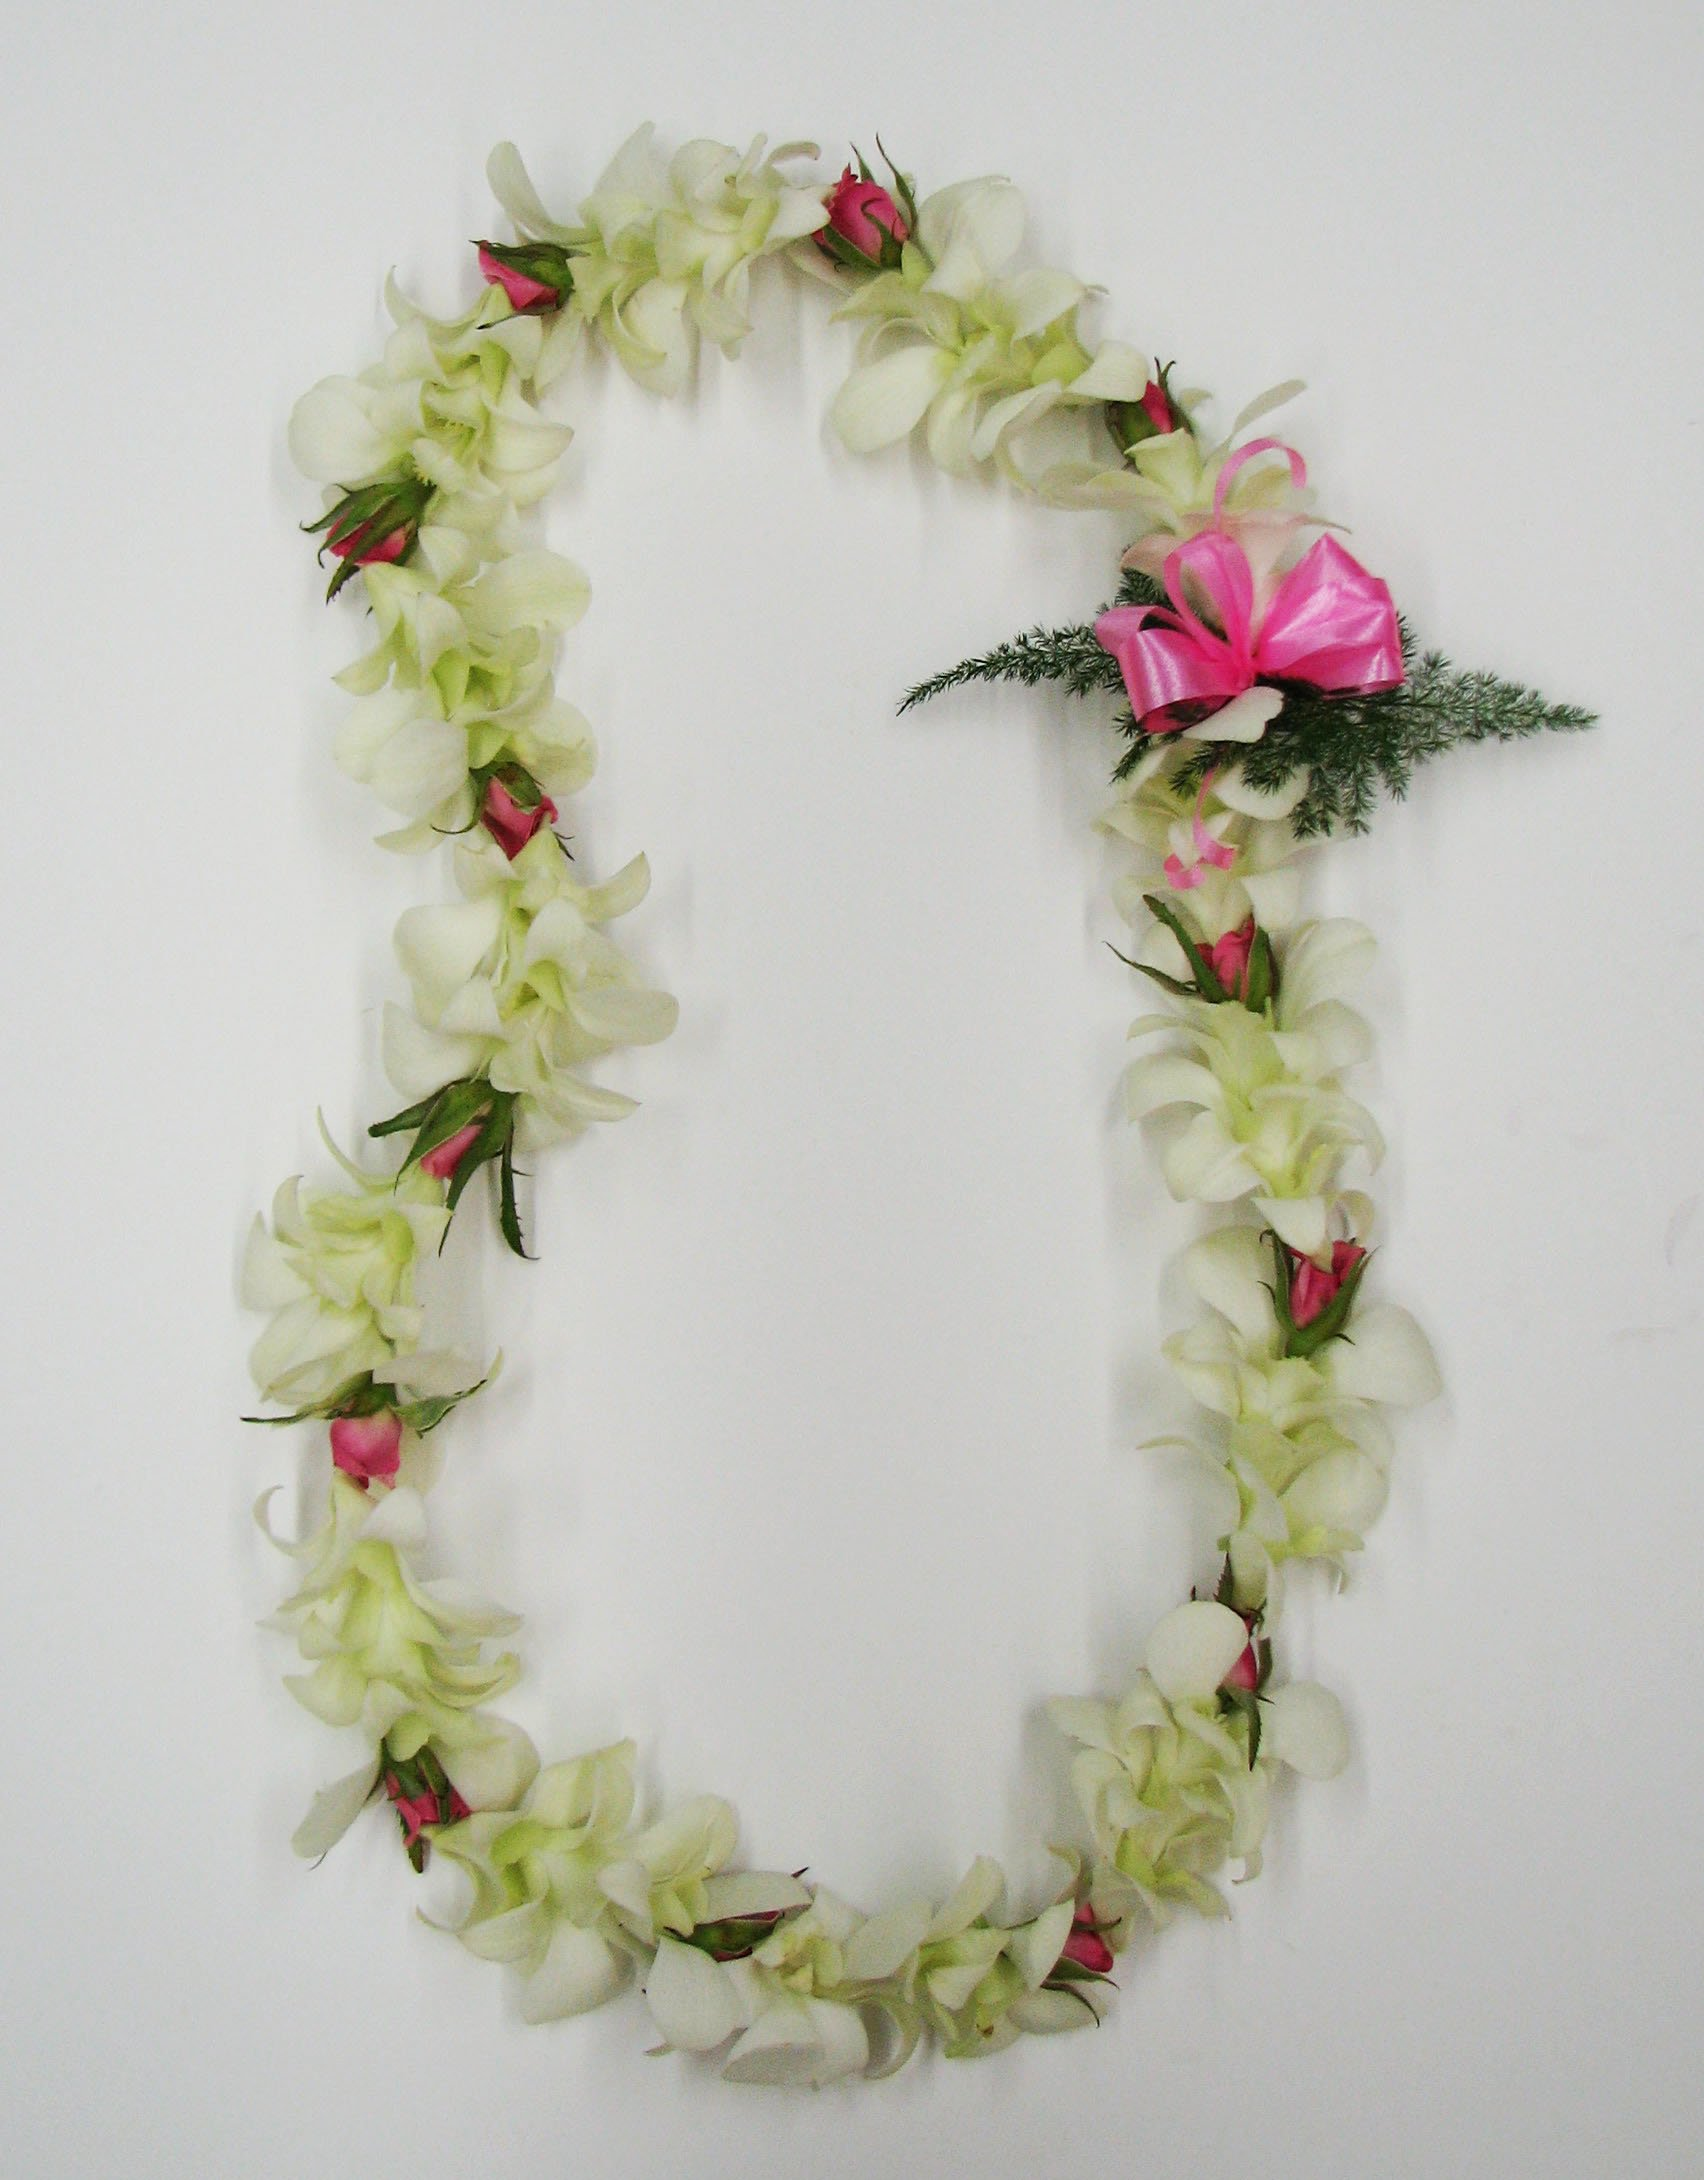 Flower Lei - Single Strand White Orchid and Rose Flower Lei